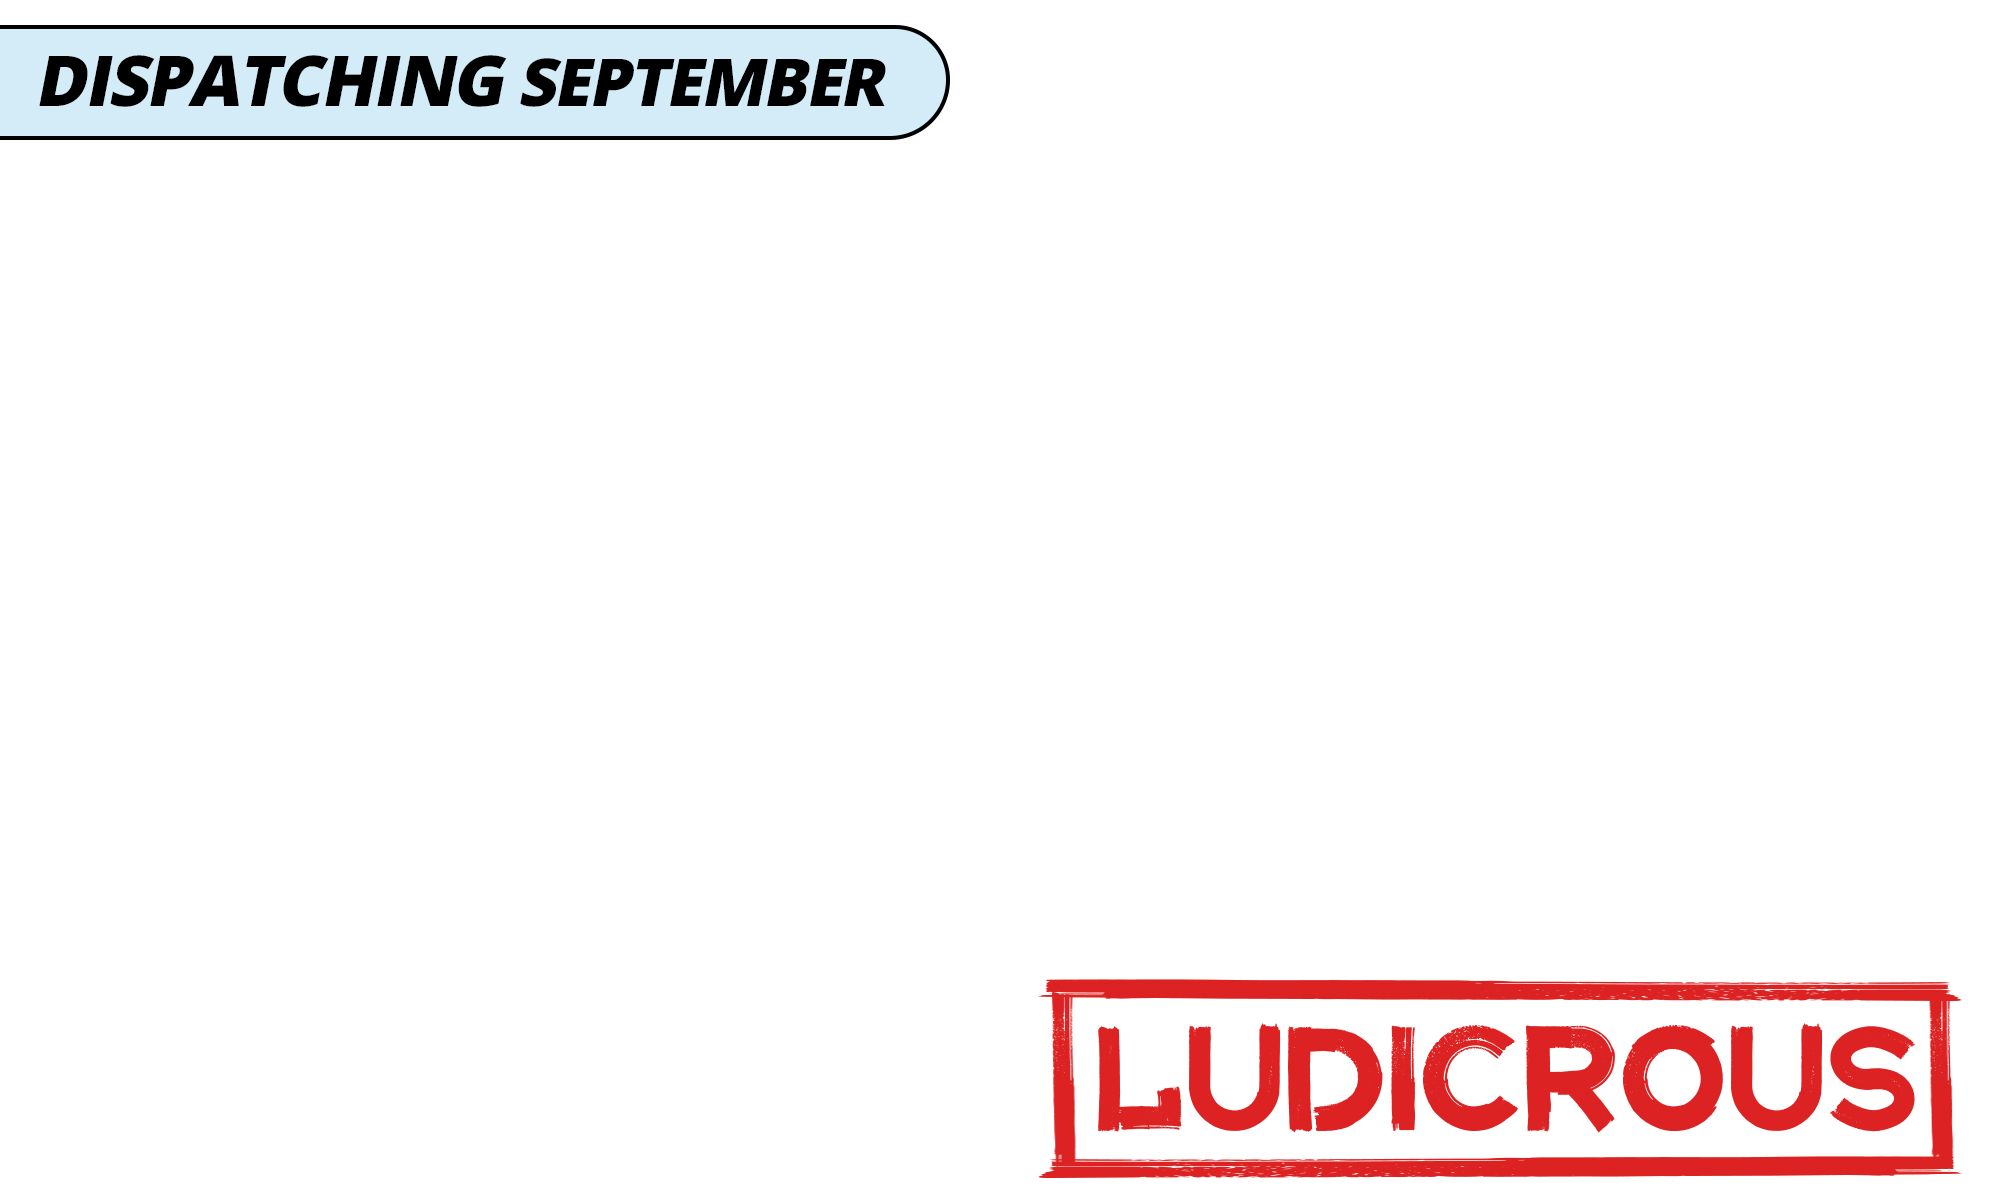 Dispatching september   ludicrous   blue